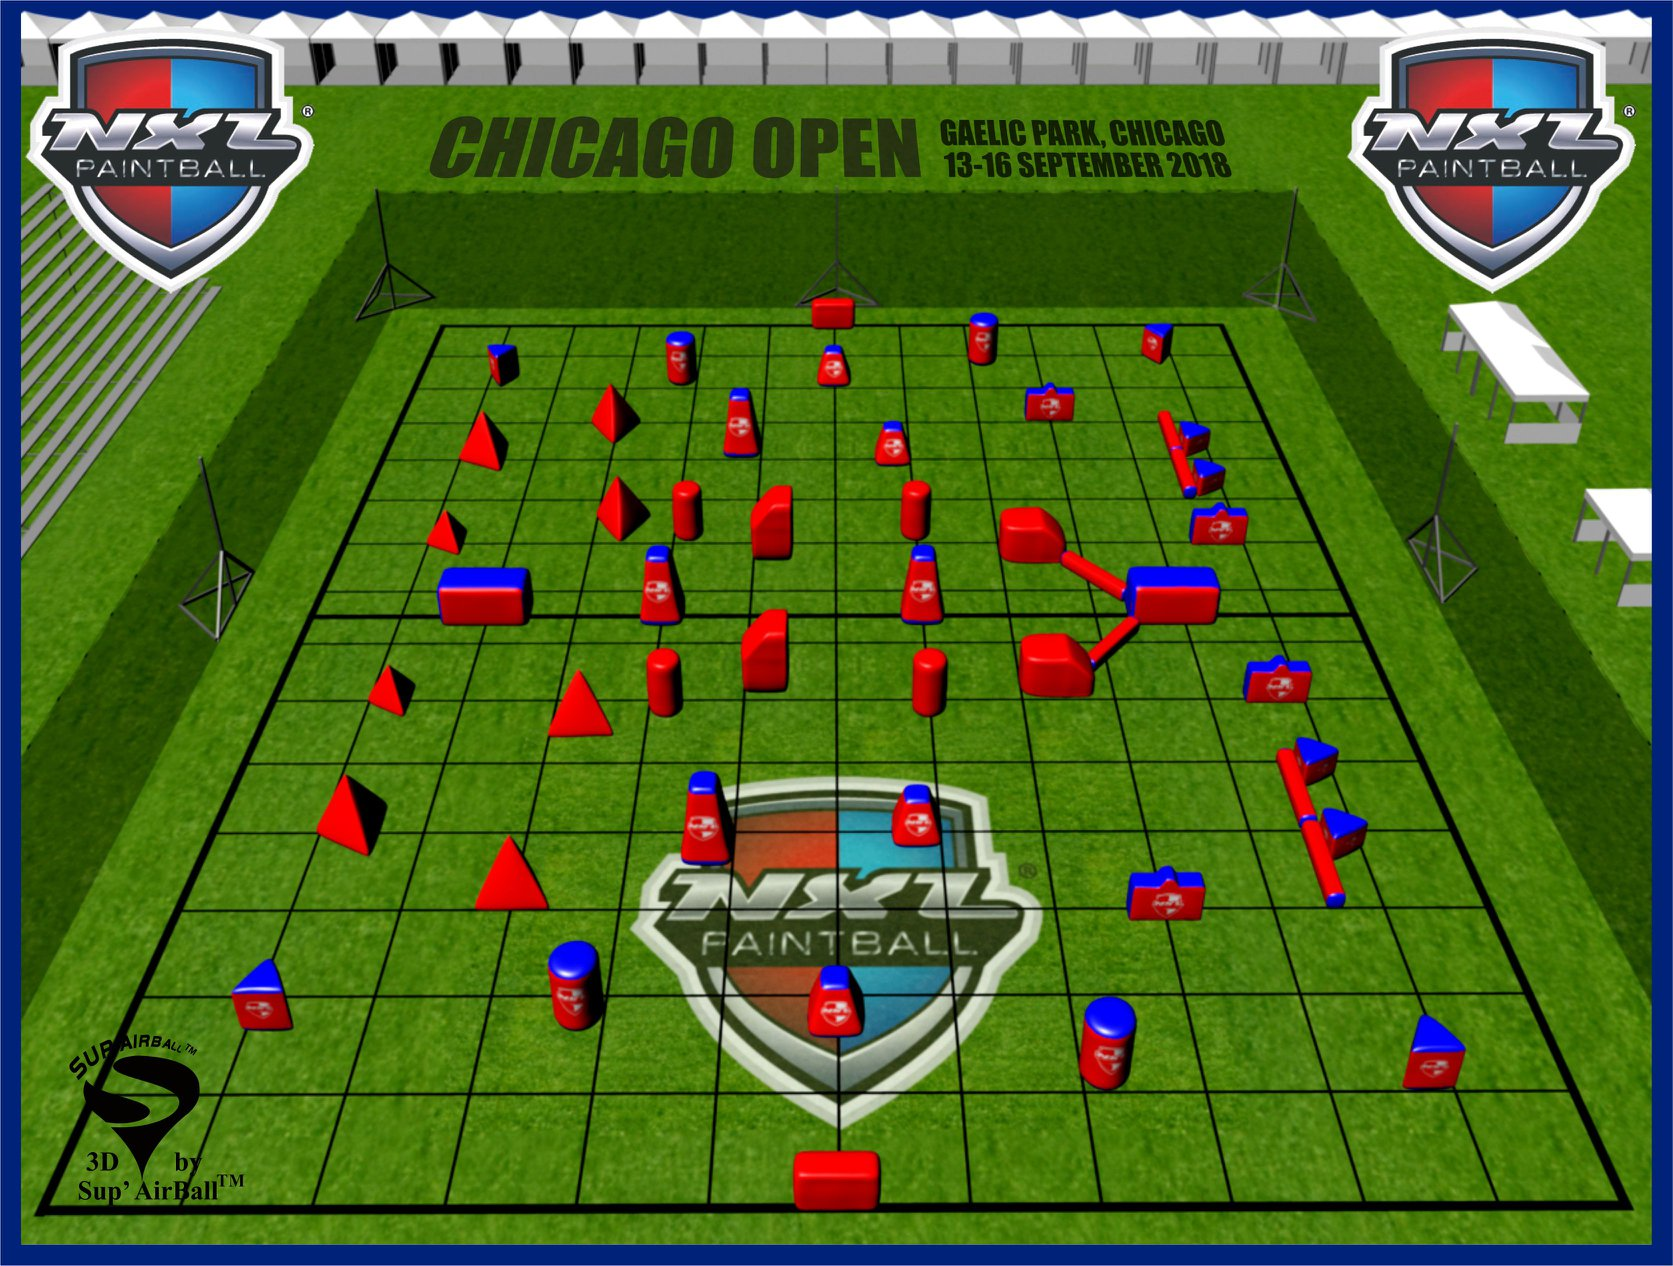 nxl2018chicago_layout2.jpg